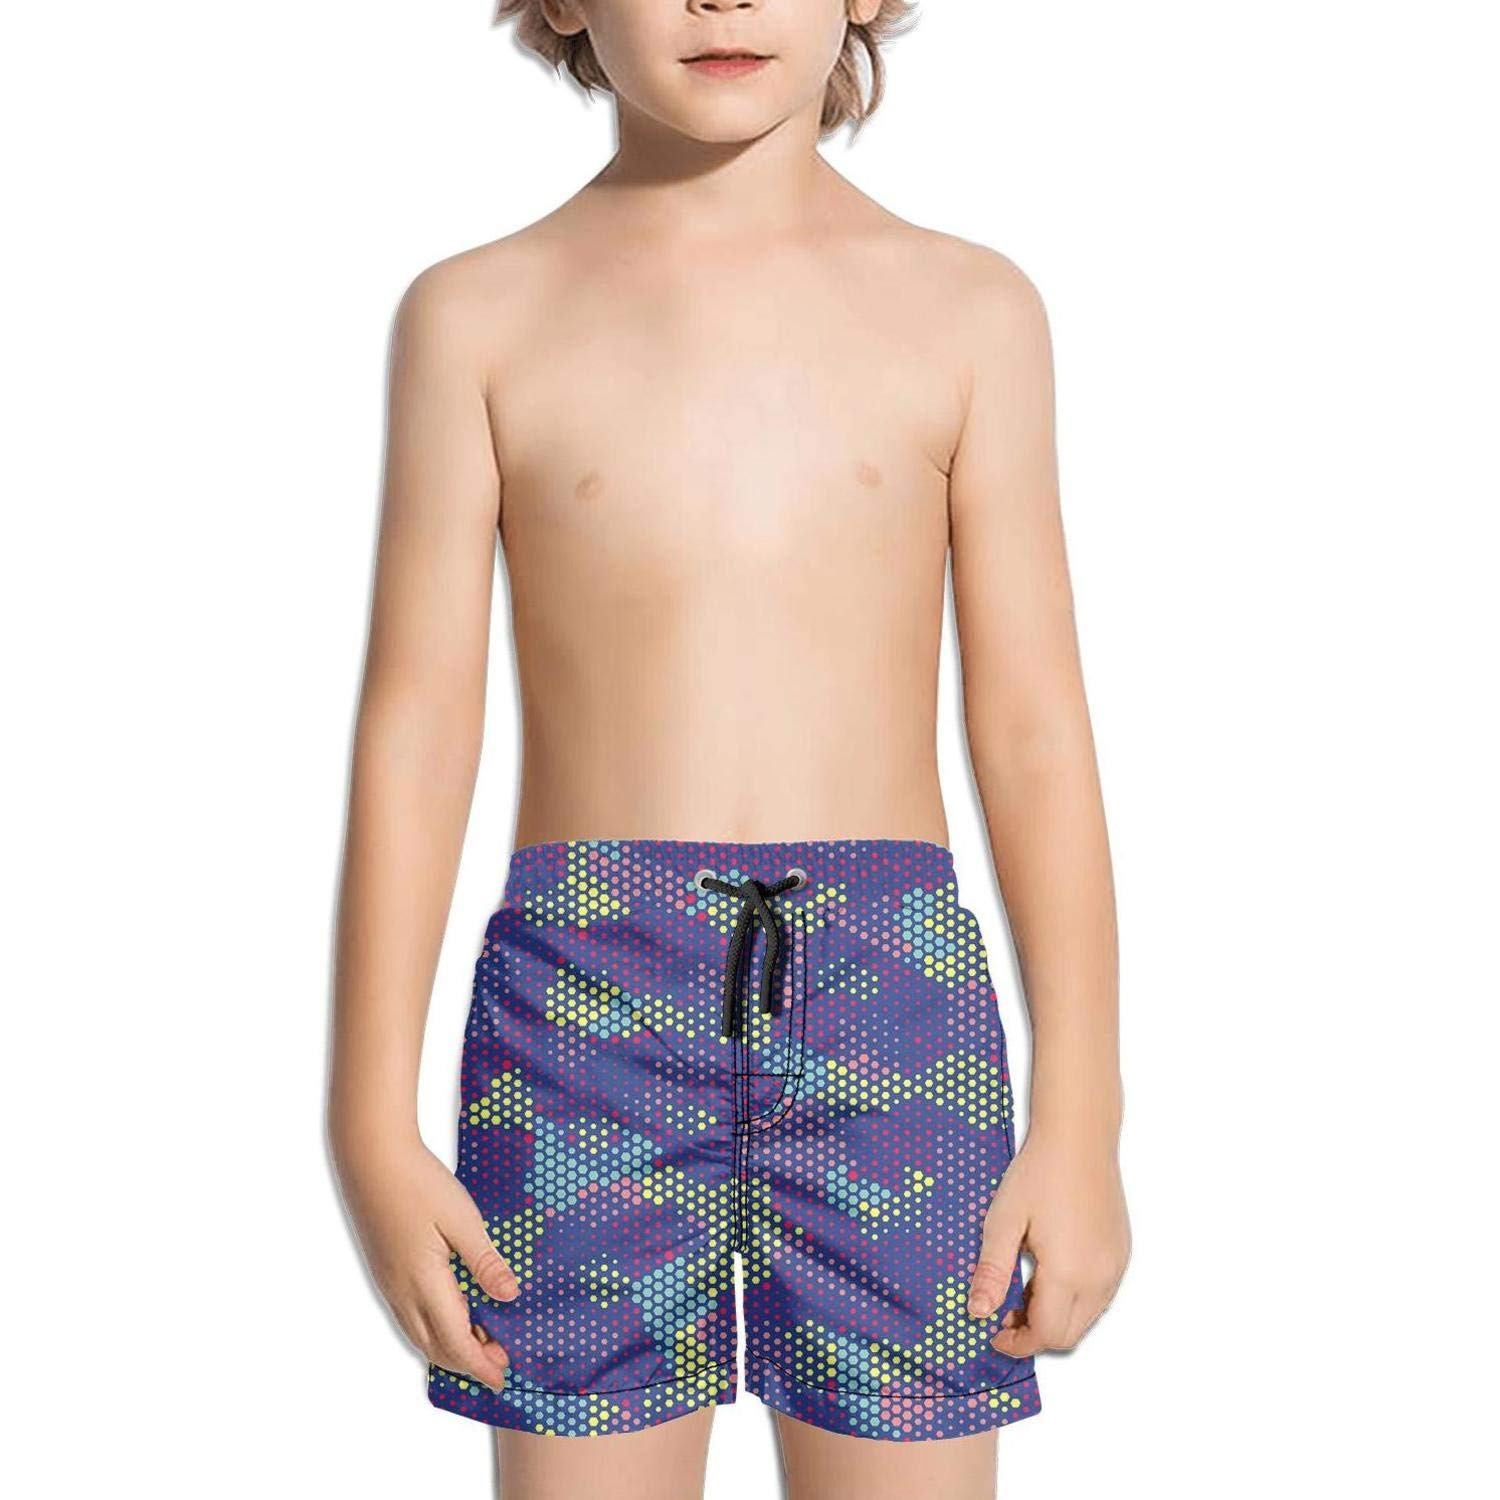 Camouflage Design Element Texture Ultra Printed Quick Dry Swimming Trunks Shorts